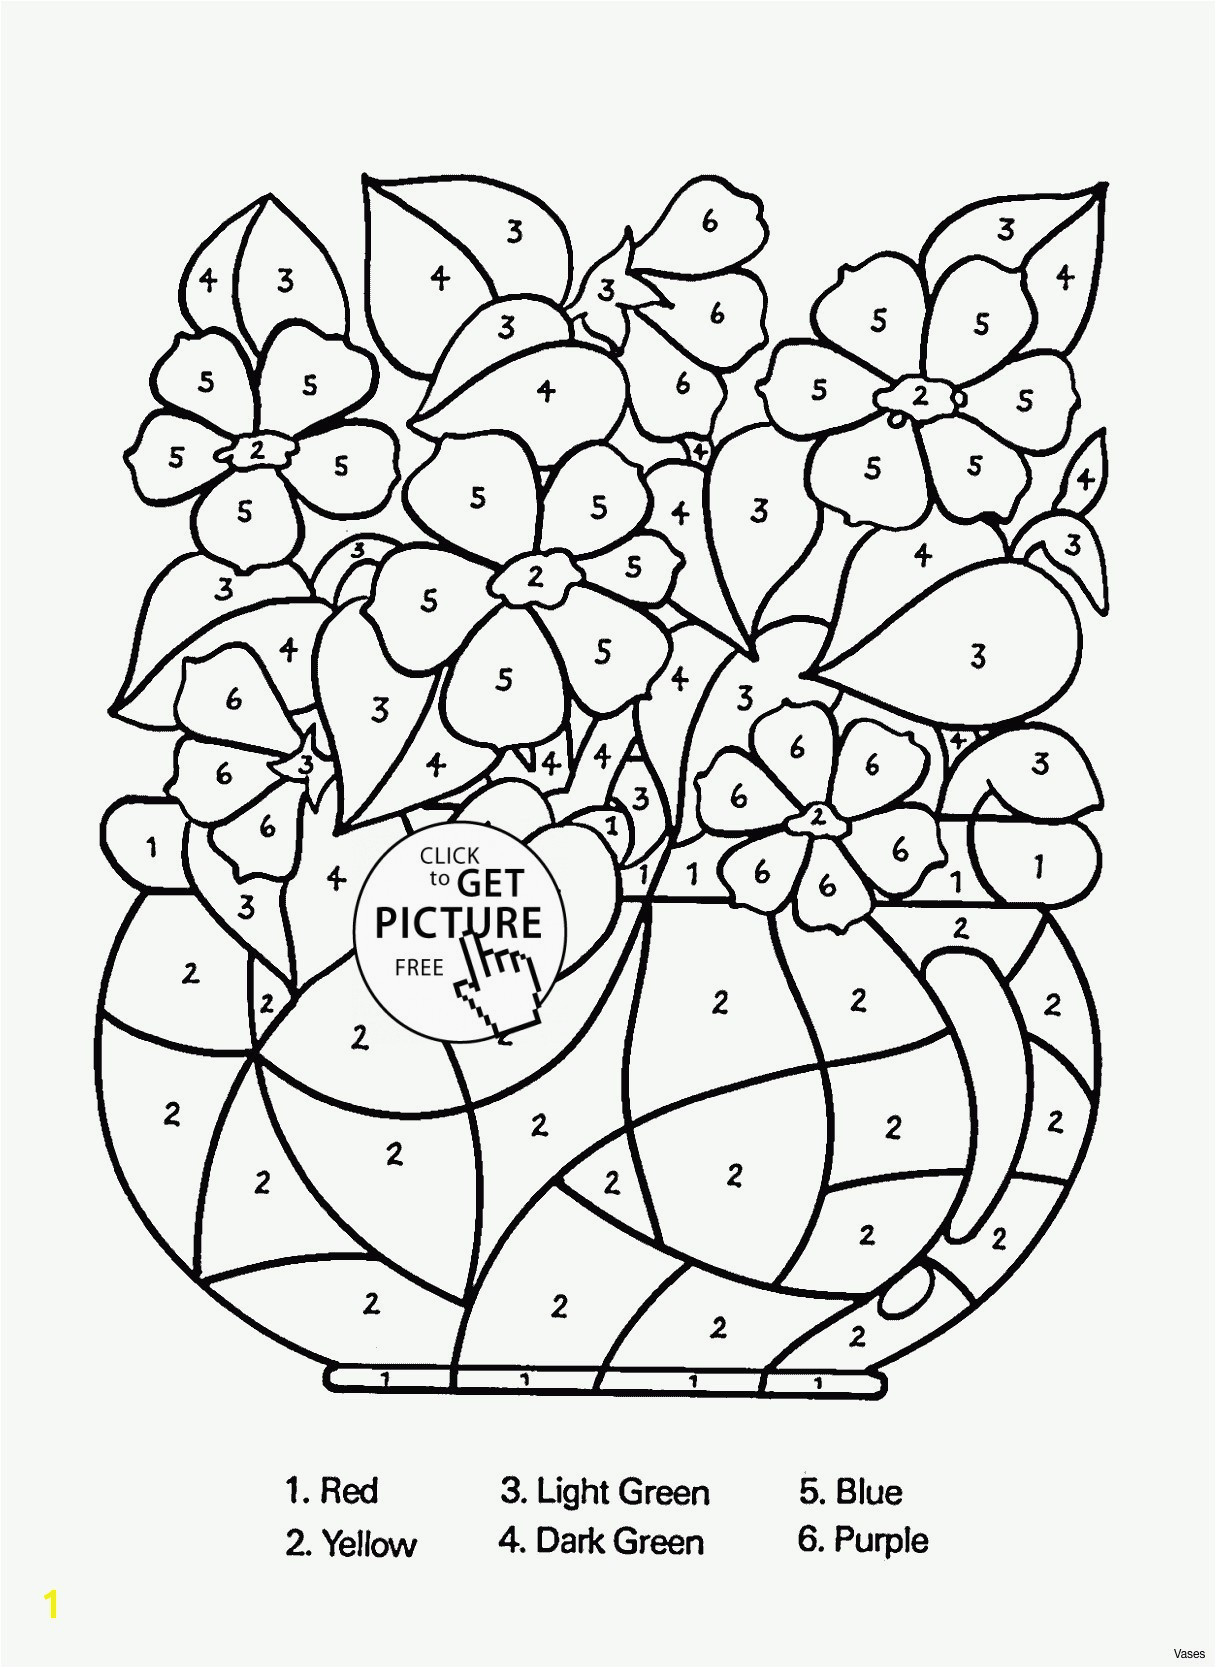 Free Indian Coloring Pages Free Indian Coloring Pages Beautiful Coloring Book Wiki Awesome Frog